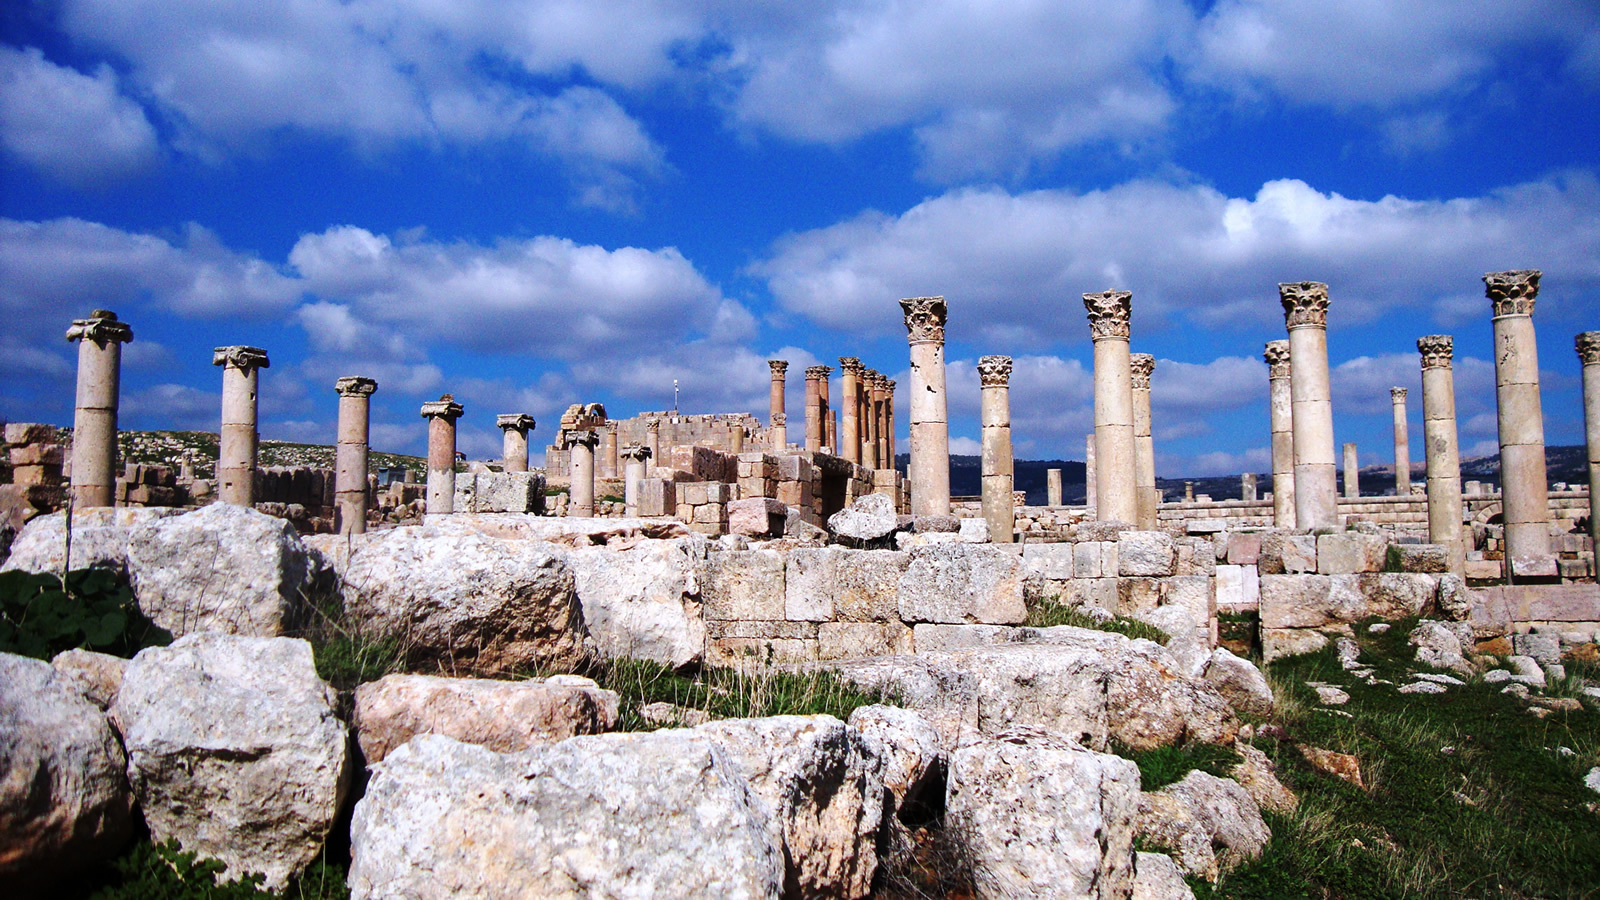 Stone Ruins with Greek Columns and Clouds